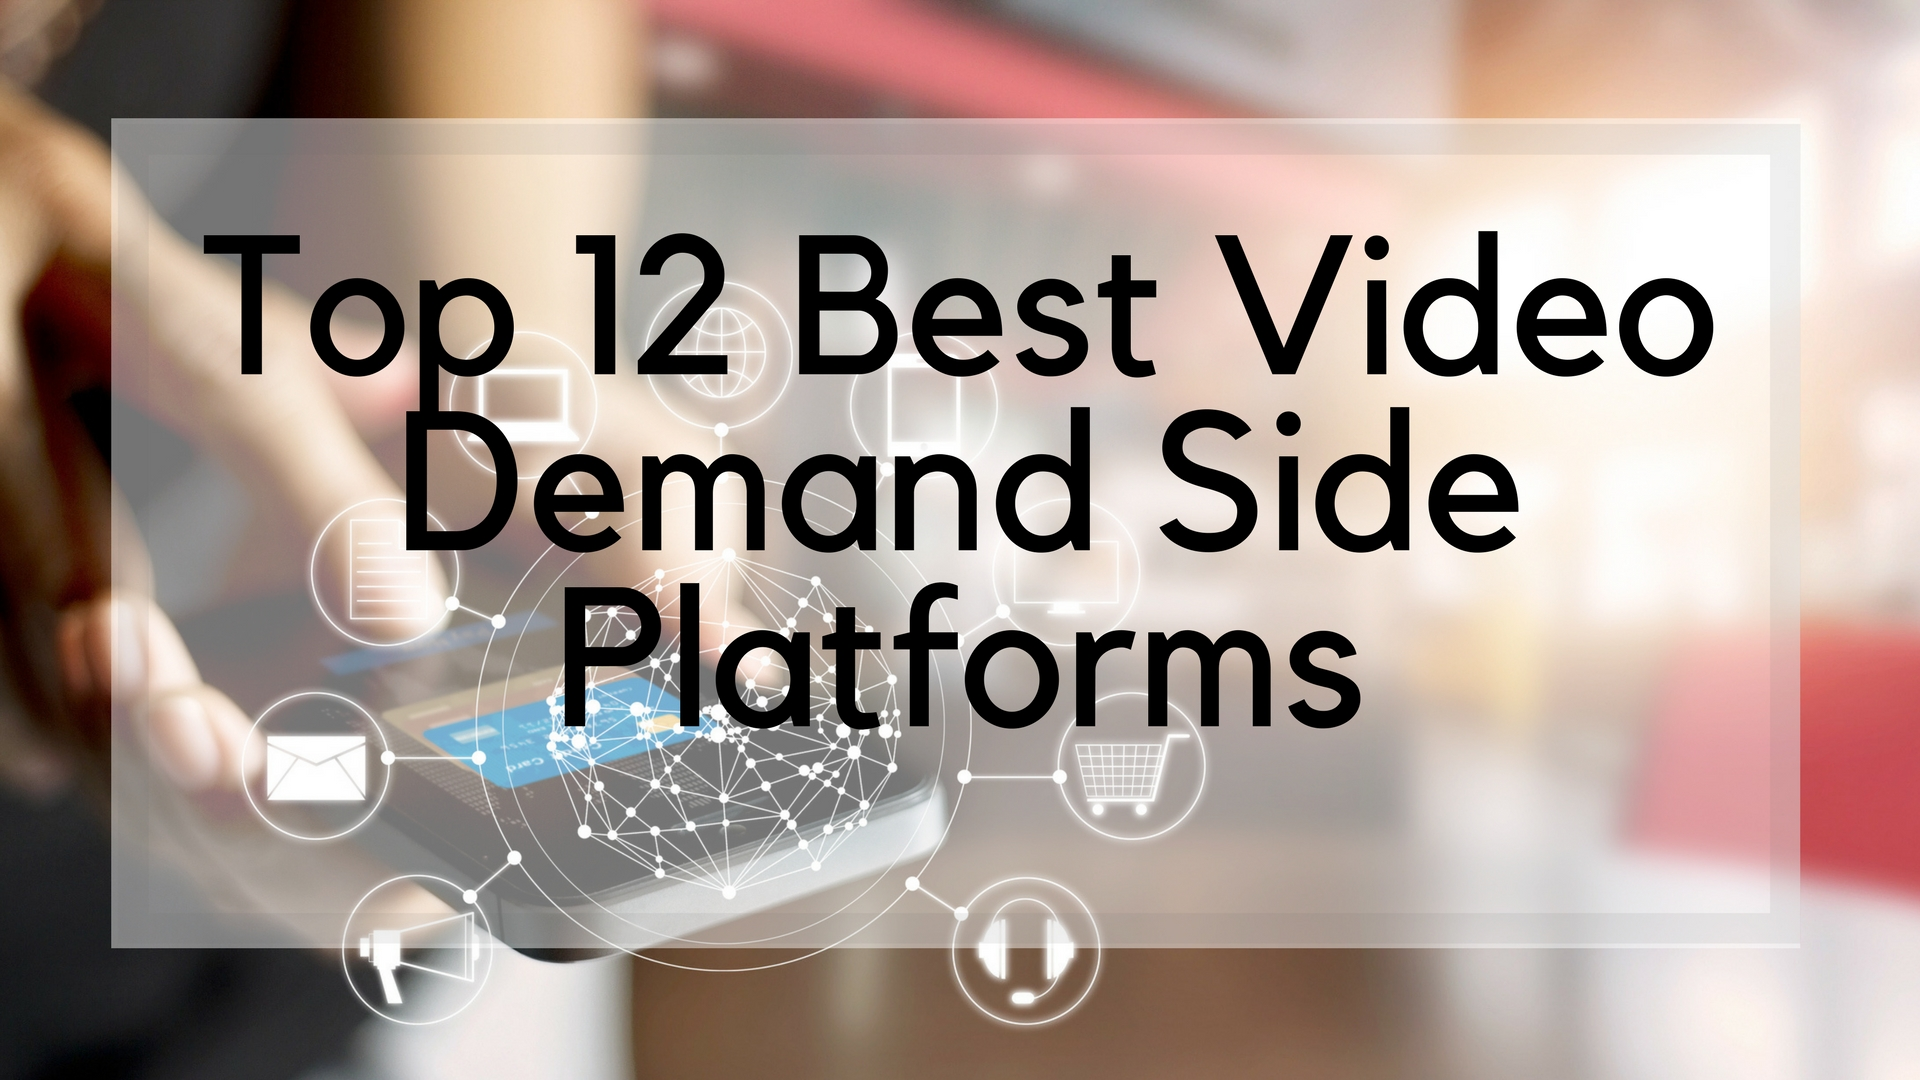 Top 12 Best Video Demand Side Platforms of 2018